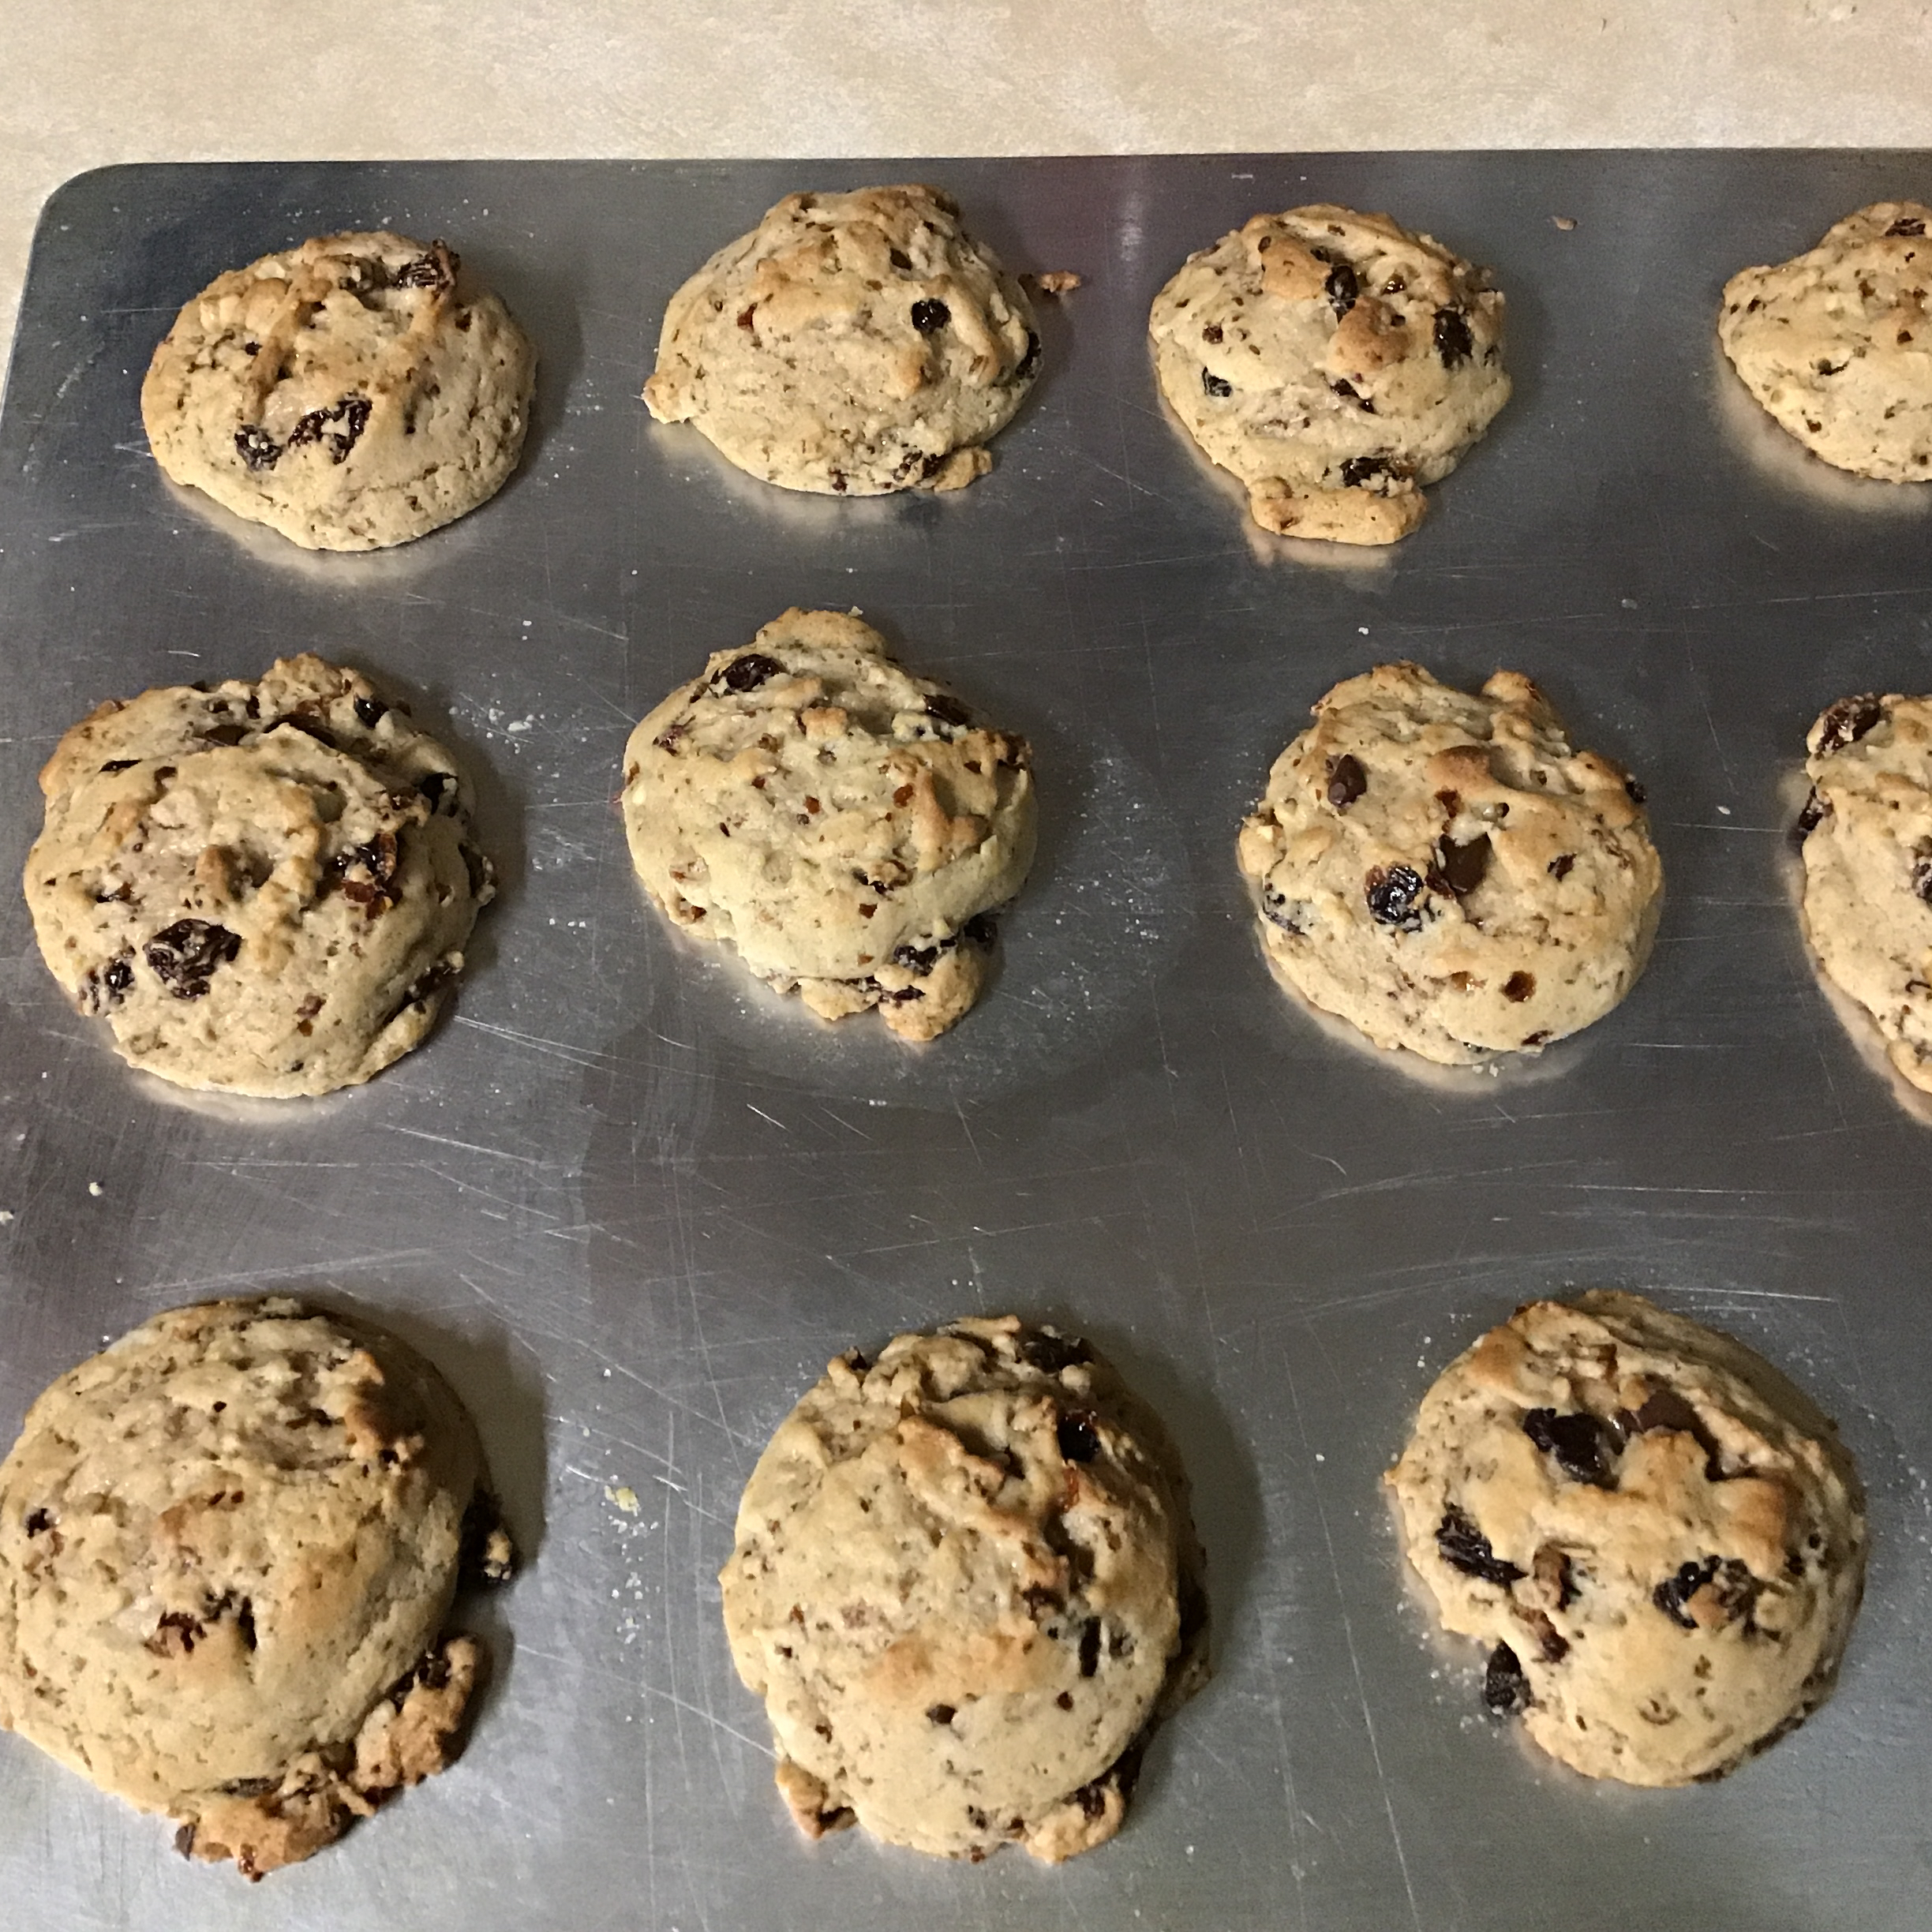 Grandma M's Raisin Cookies